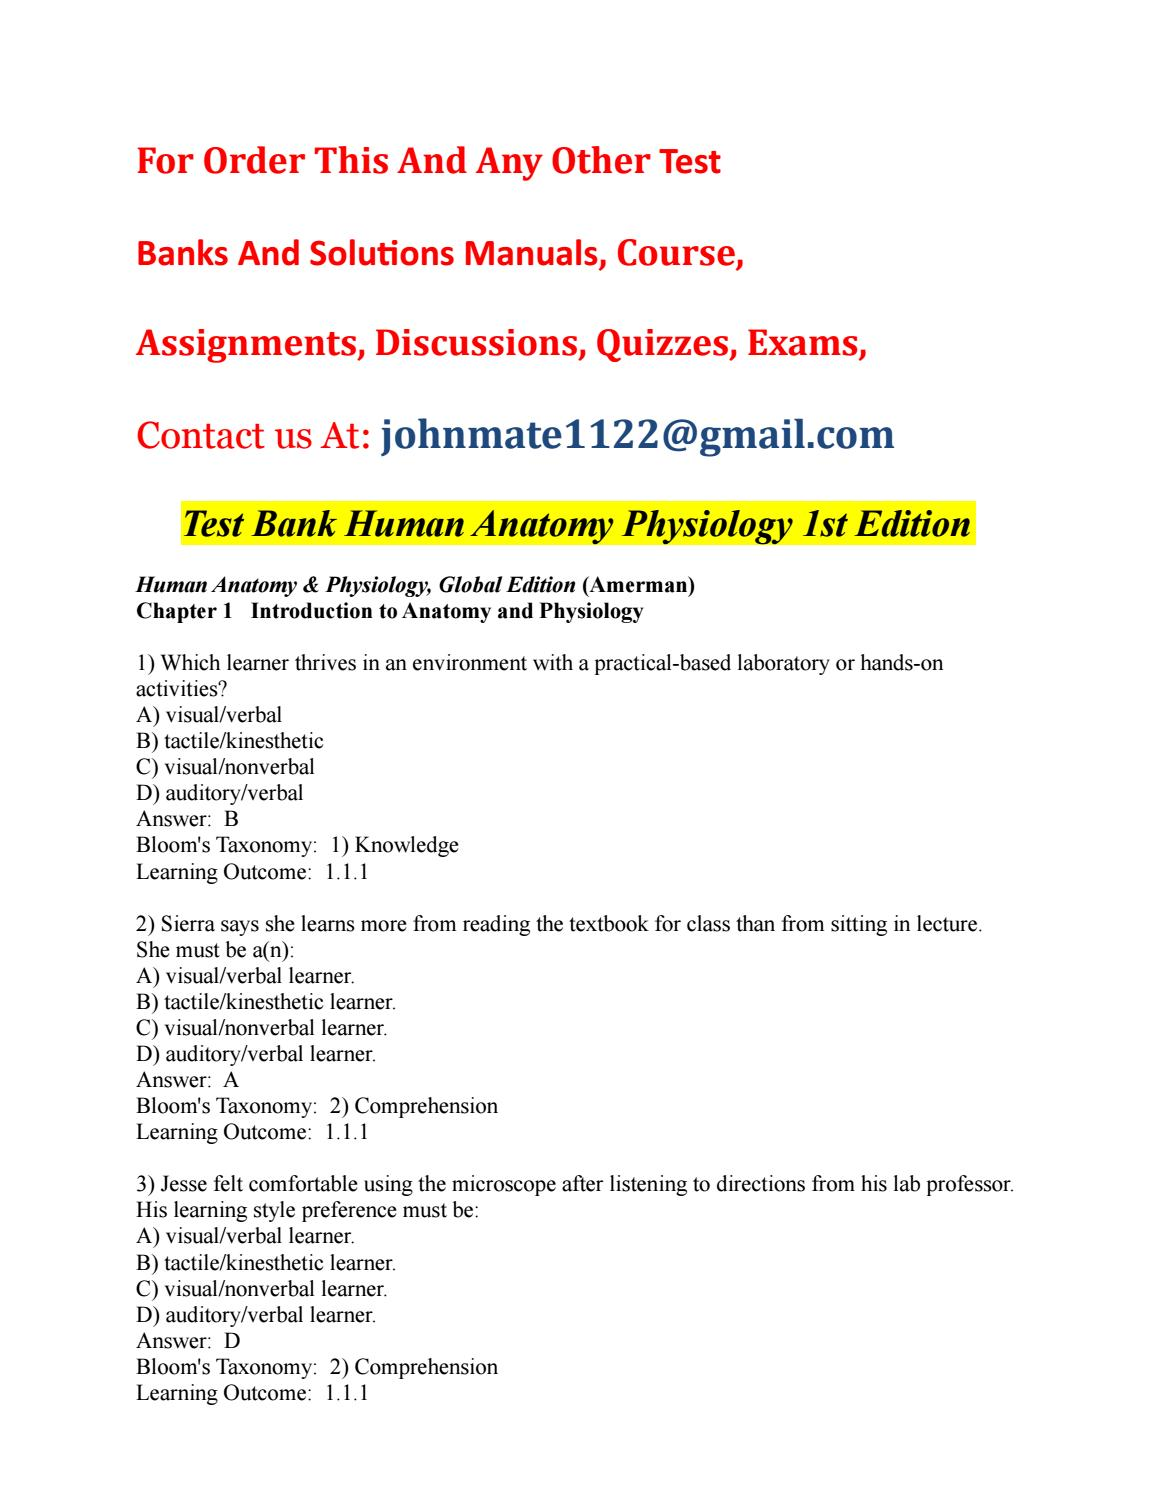 Test%20bank%20human%20anatomy%20physiology%201st%20edition by